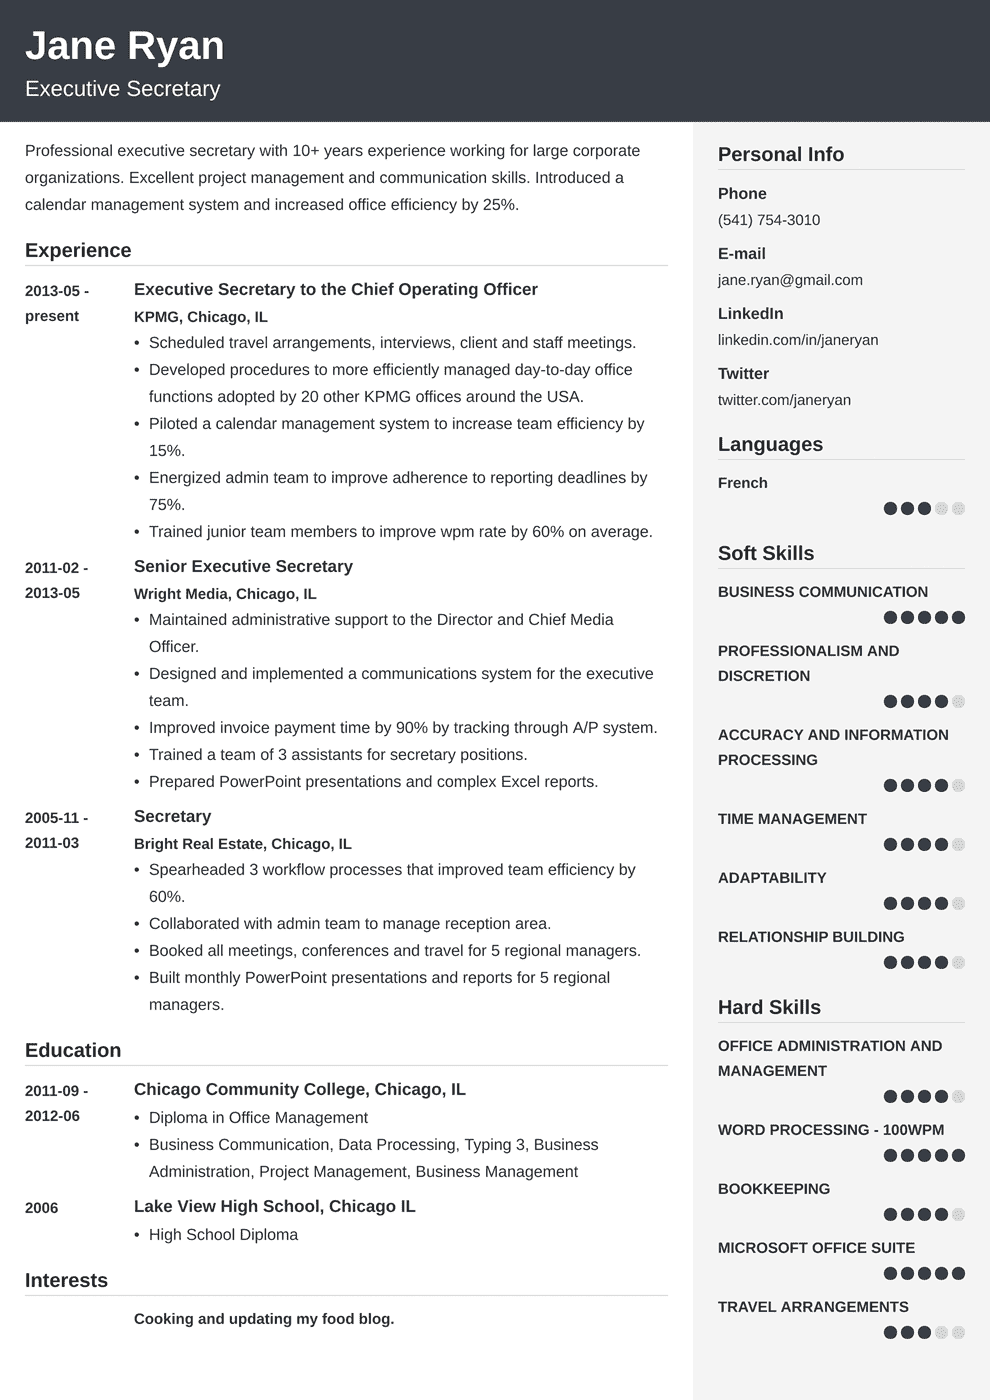 secretary resume template cubic in 2020 Resume examples